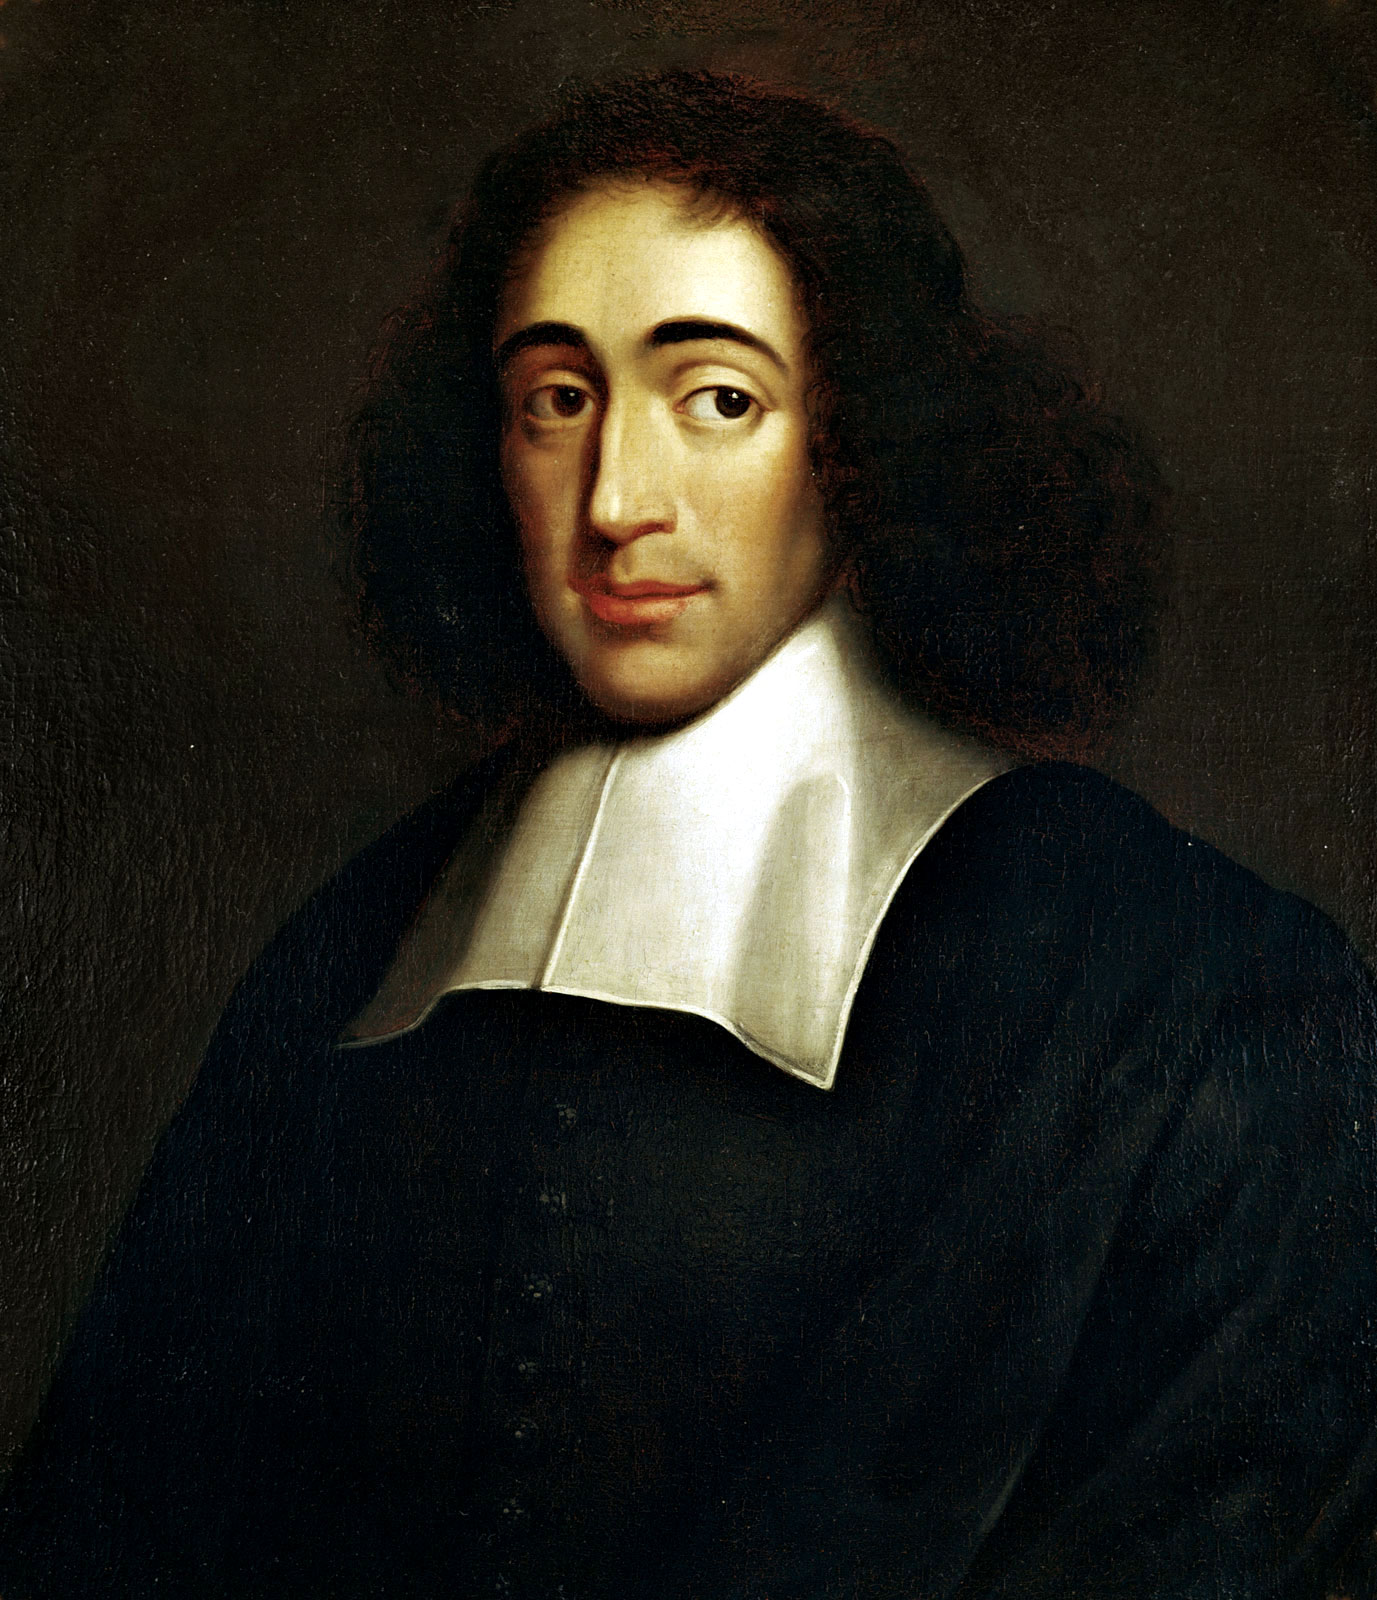 https://upload.wikimedia.org/wikipedia/commons/e/ea/Spinoza.jpg